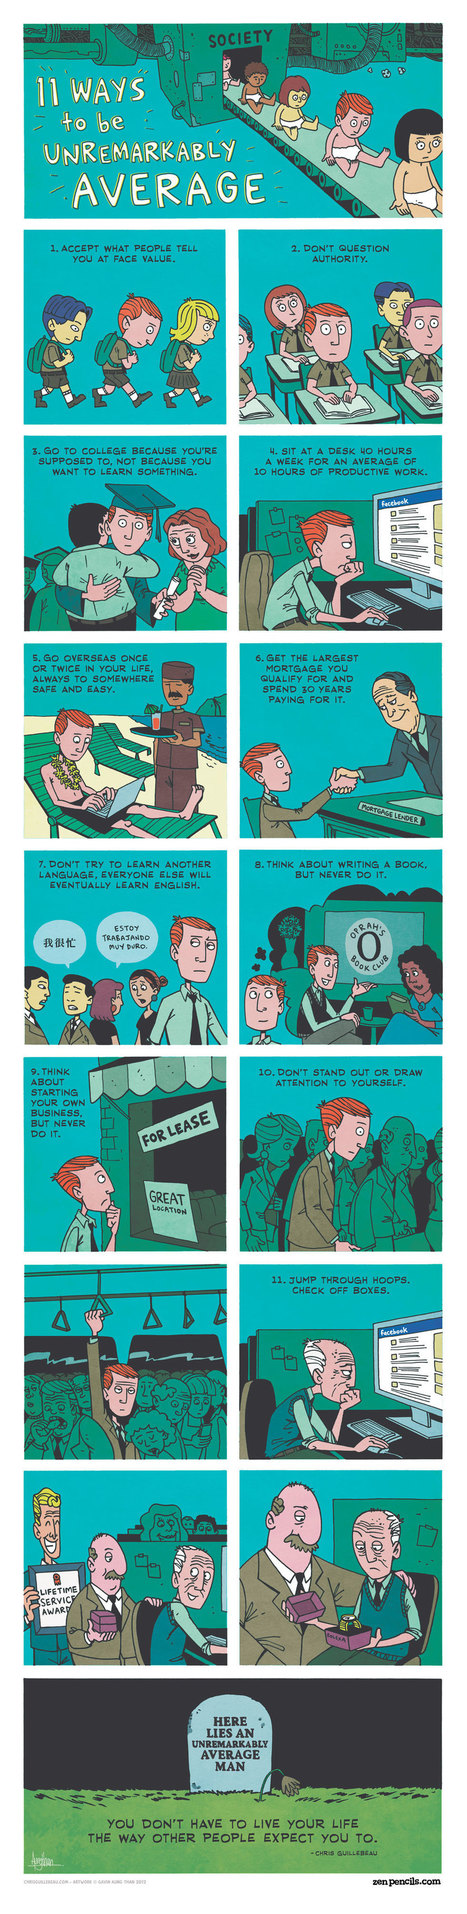 11 Ways To Be Unremarkably Average #Infographic | Soup for thought | Scoop.it